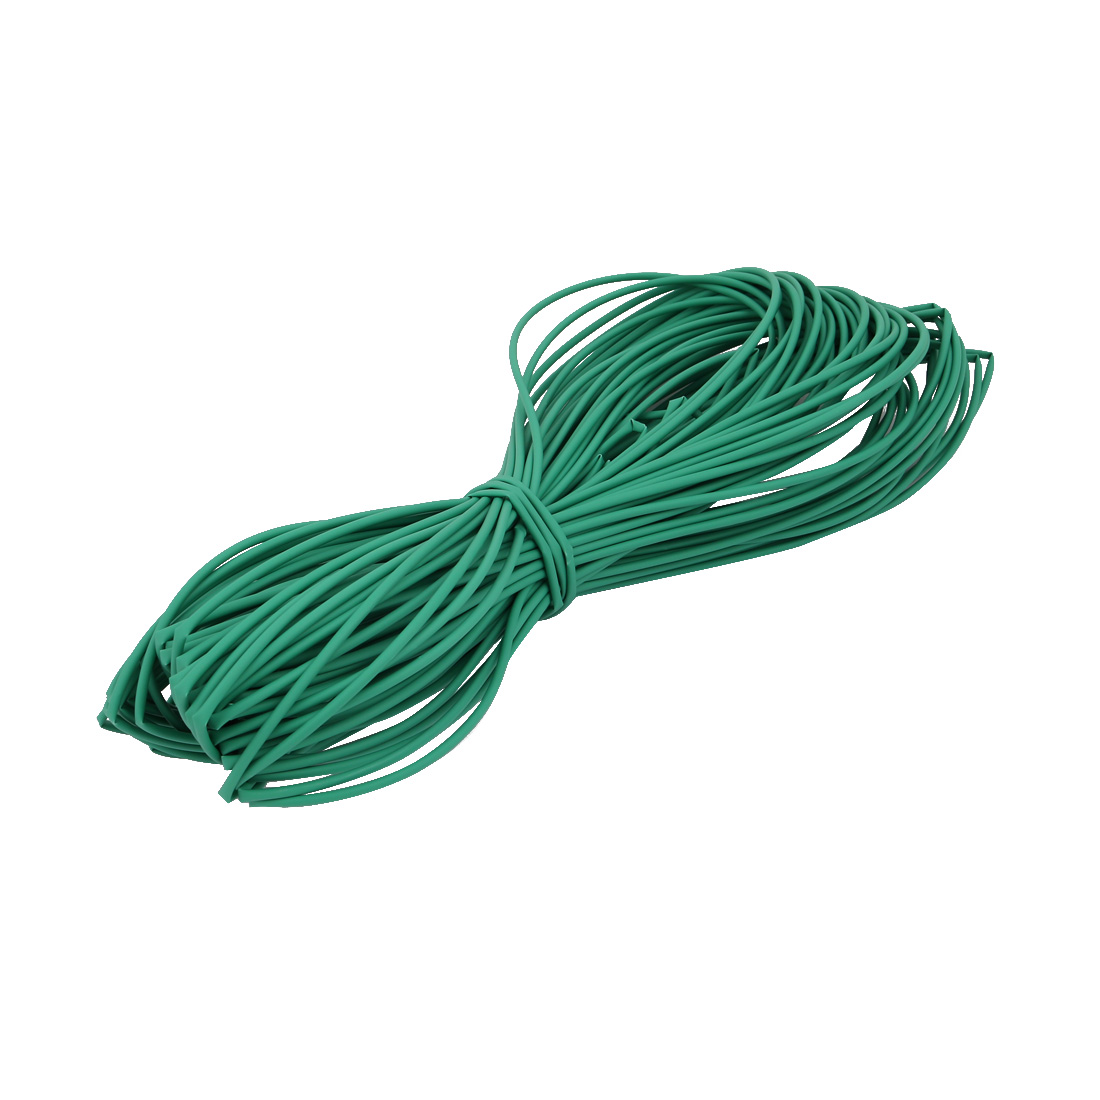 40M 0.08in Inner Dia Polyolefin Flame Retardant Tube Green for Wire Repairing